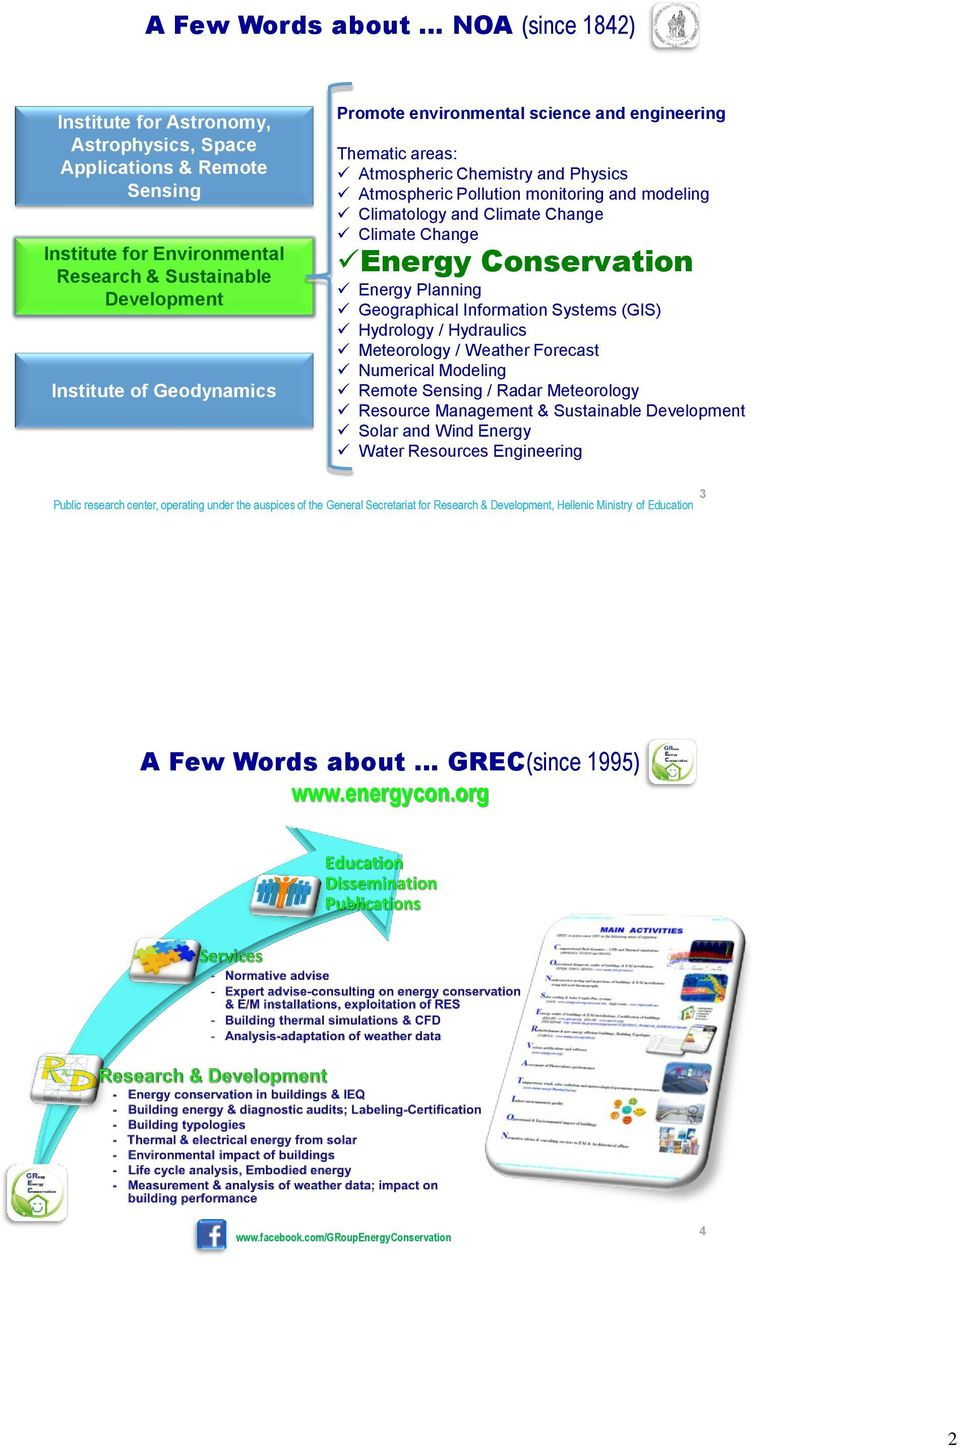 Conservation Energy Planning Geographical Information Systems (GIS) Hydrology / Hydraulics Meteorology / Weather Forecast Numerical Modeling Remote Sensing / Radar Meteorology Resource Management &